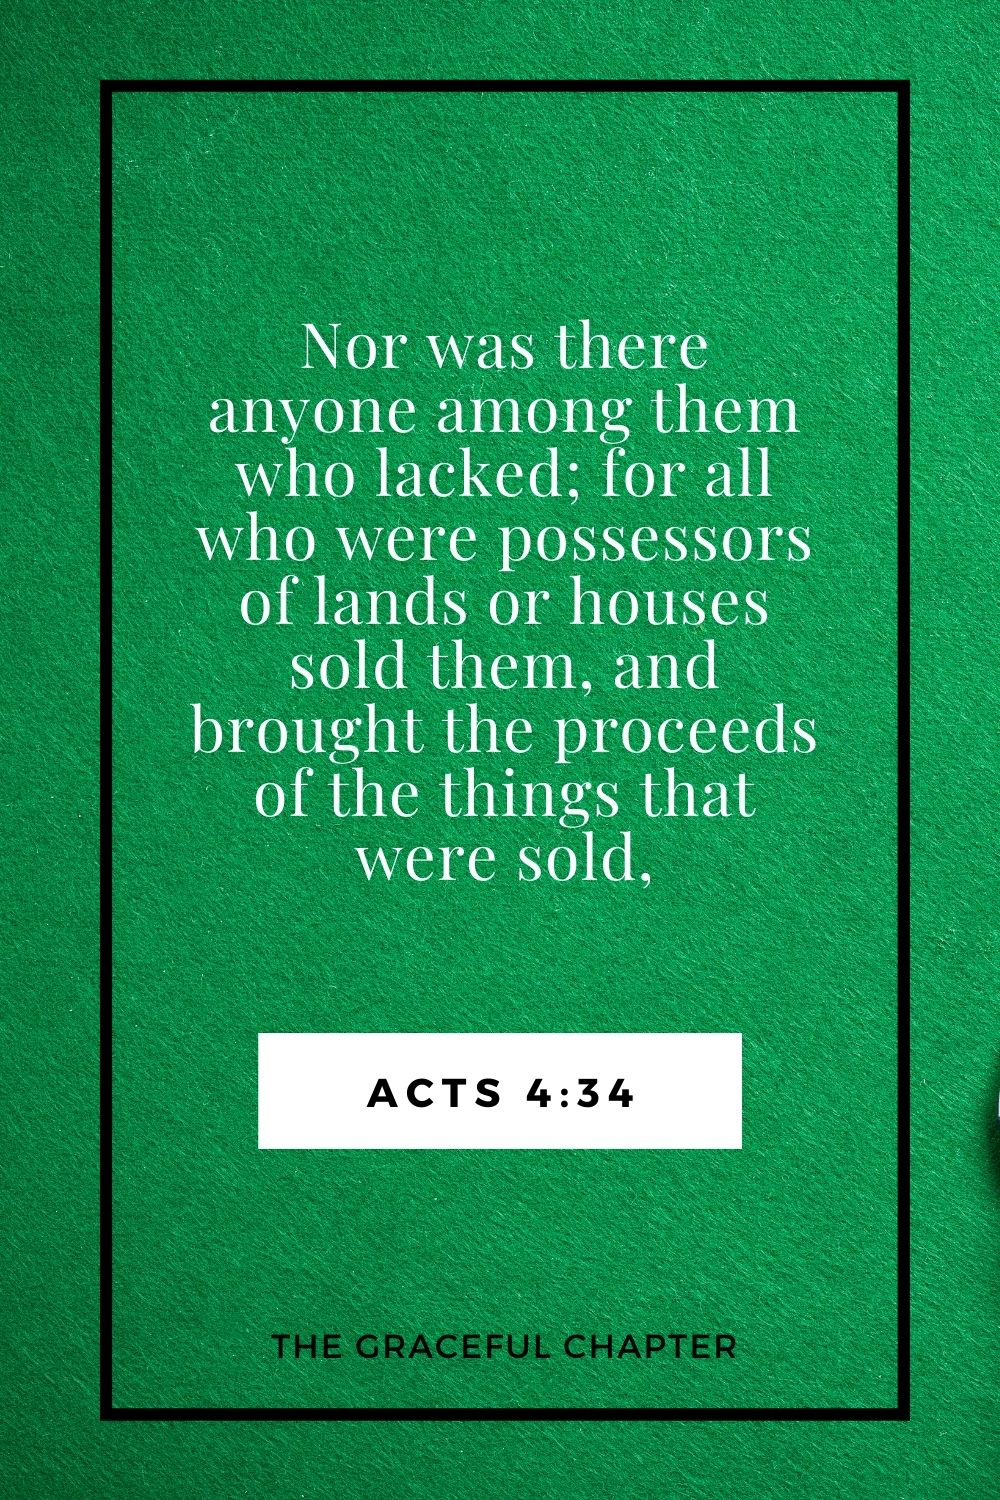 Nor was there anyone among them who lacked; for all who were possessors of lands or houses sold them, and brought the proceeds of the things that were sold, Acts 4:34